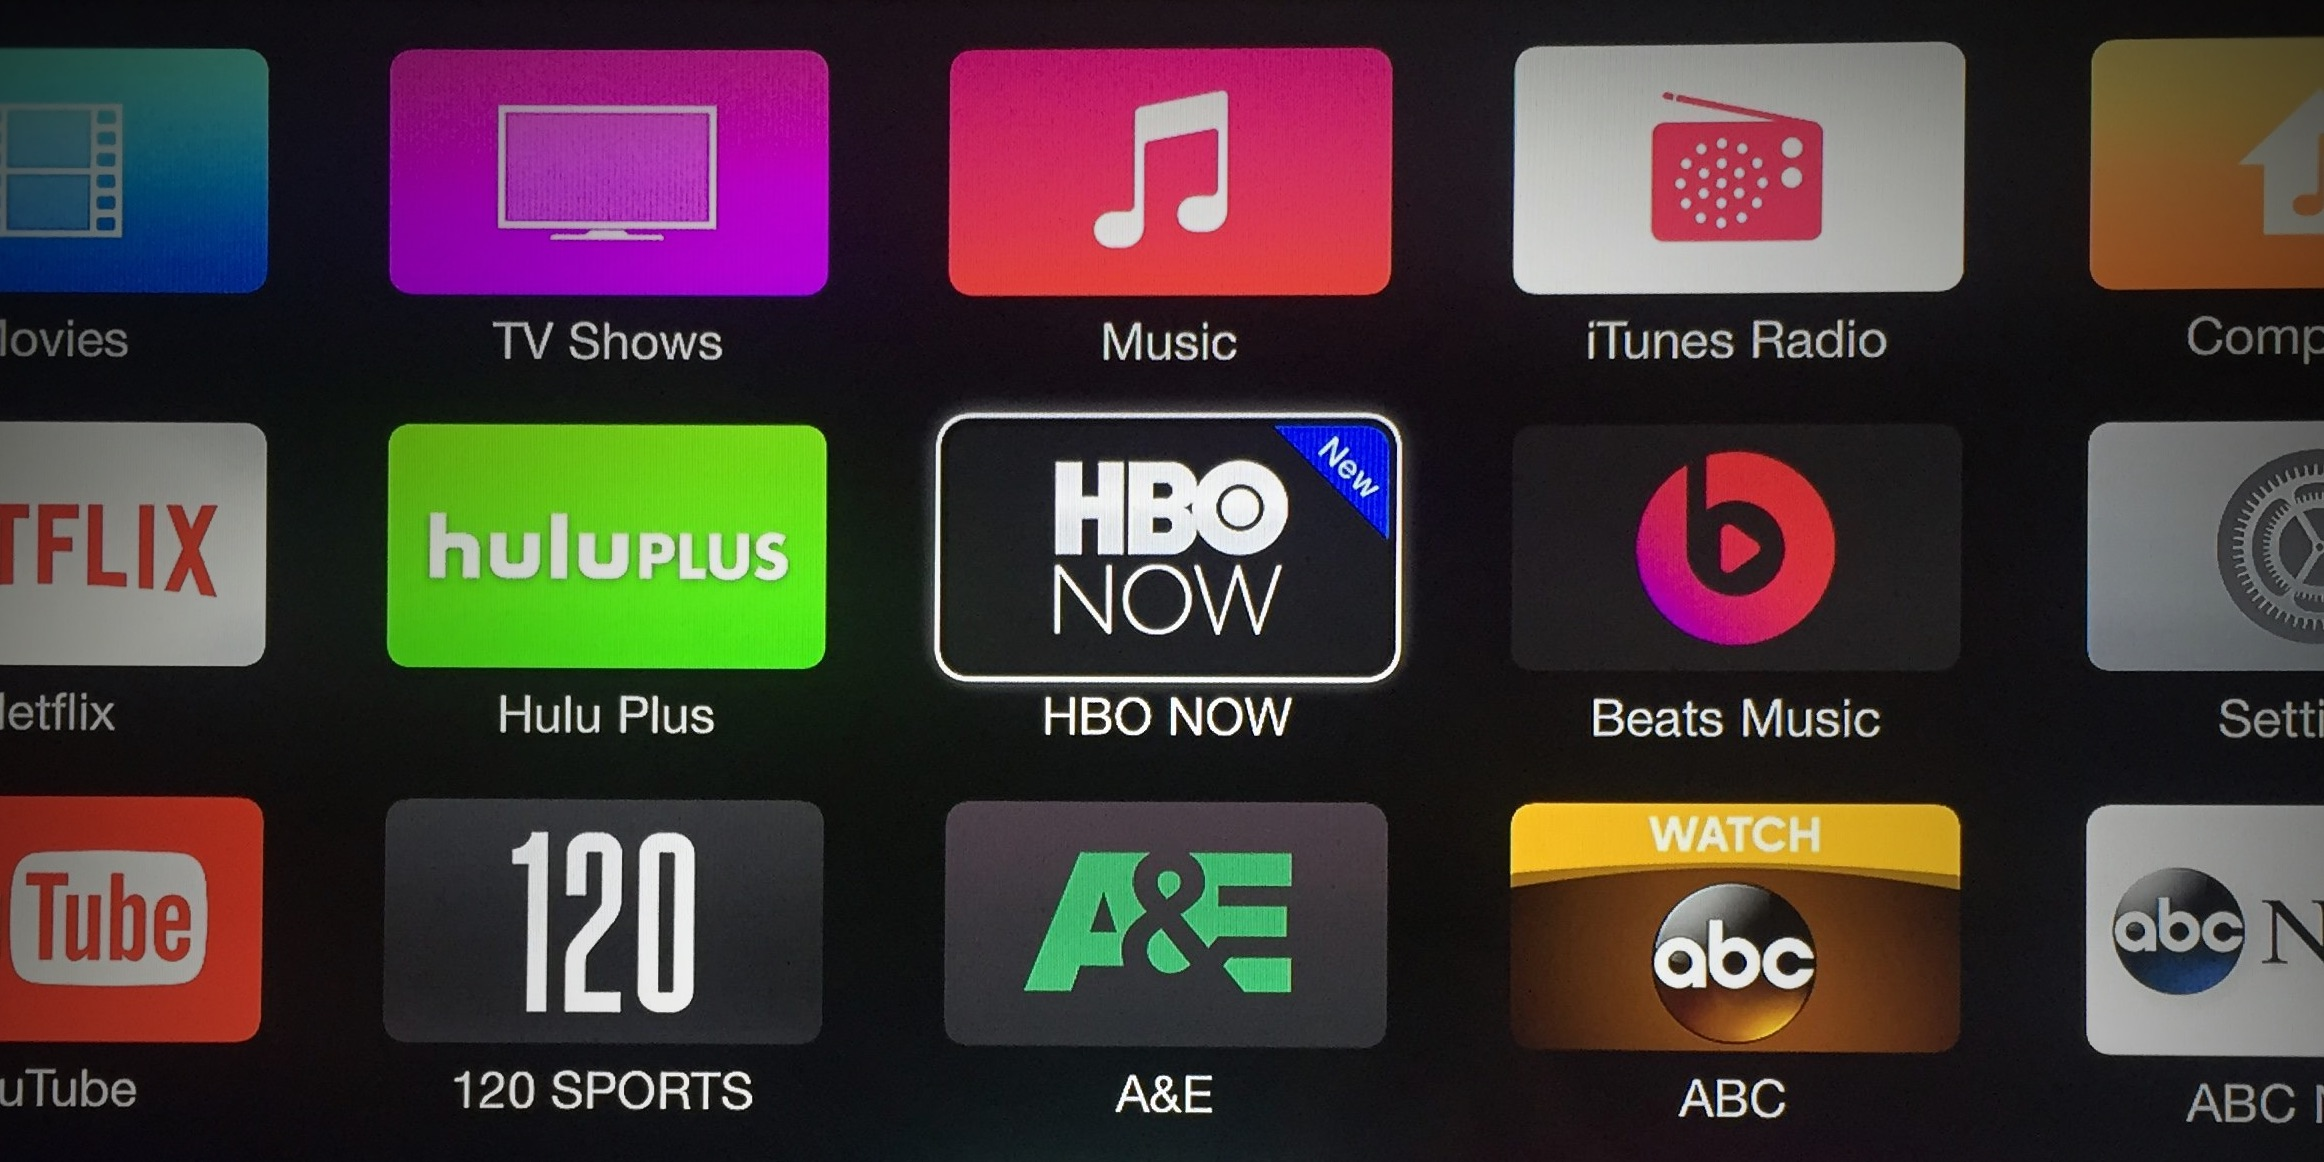 Hbo Now Stops Working For 3rd Gen Apple Tv In May Here Are Your Options Update 9to5mac